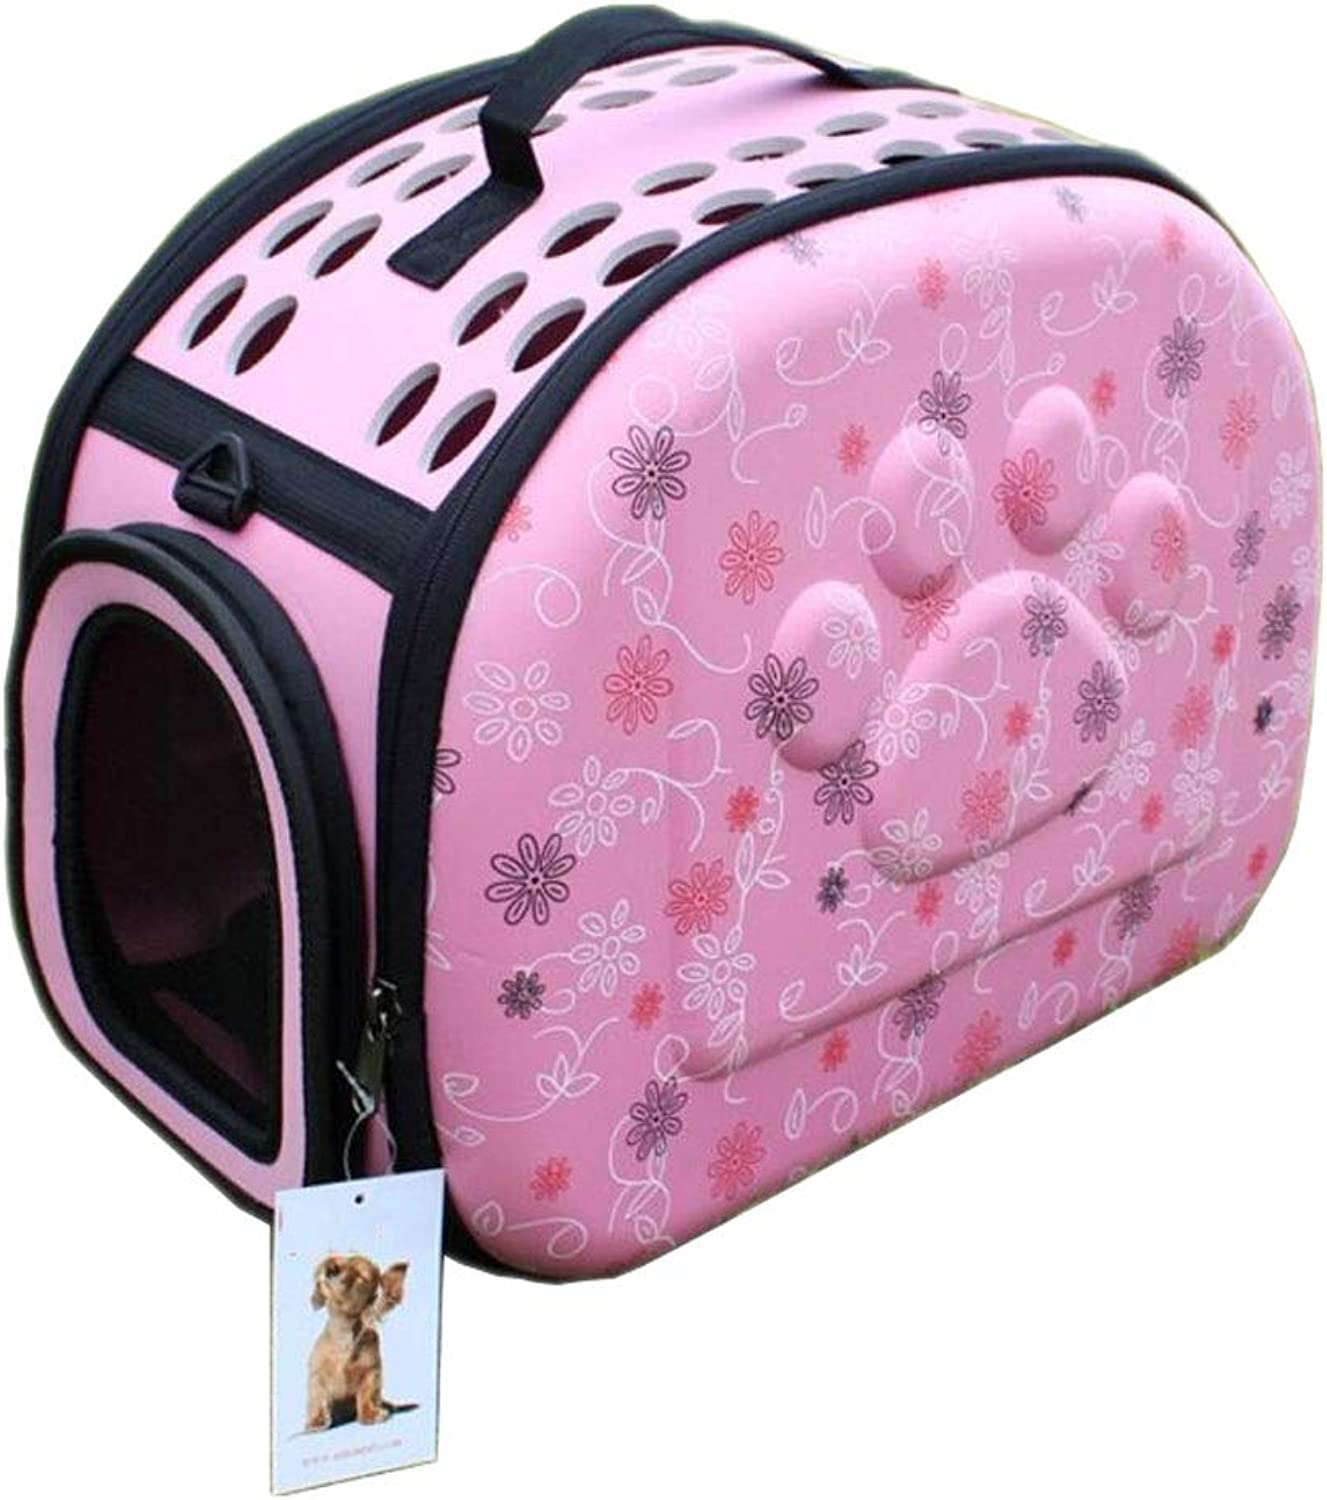 Flower Figure Pet Box Folding Cage Cat Dog Portable Diagonal Travel Transport Car Out of The Consignment 3 color 43  29  35cm MUMUJIN (color   Pink)